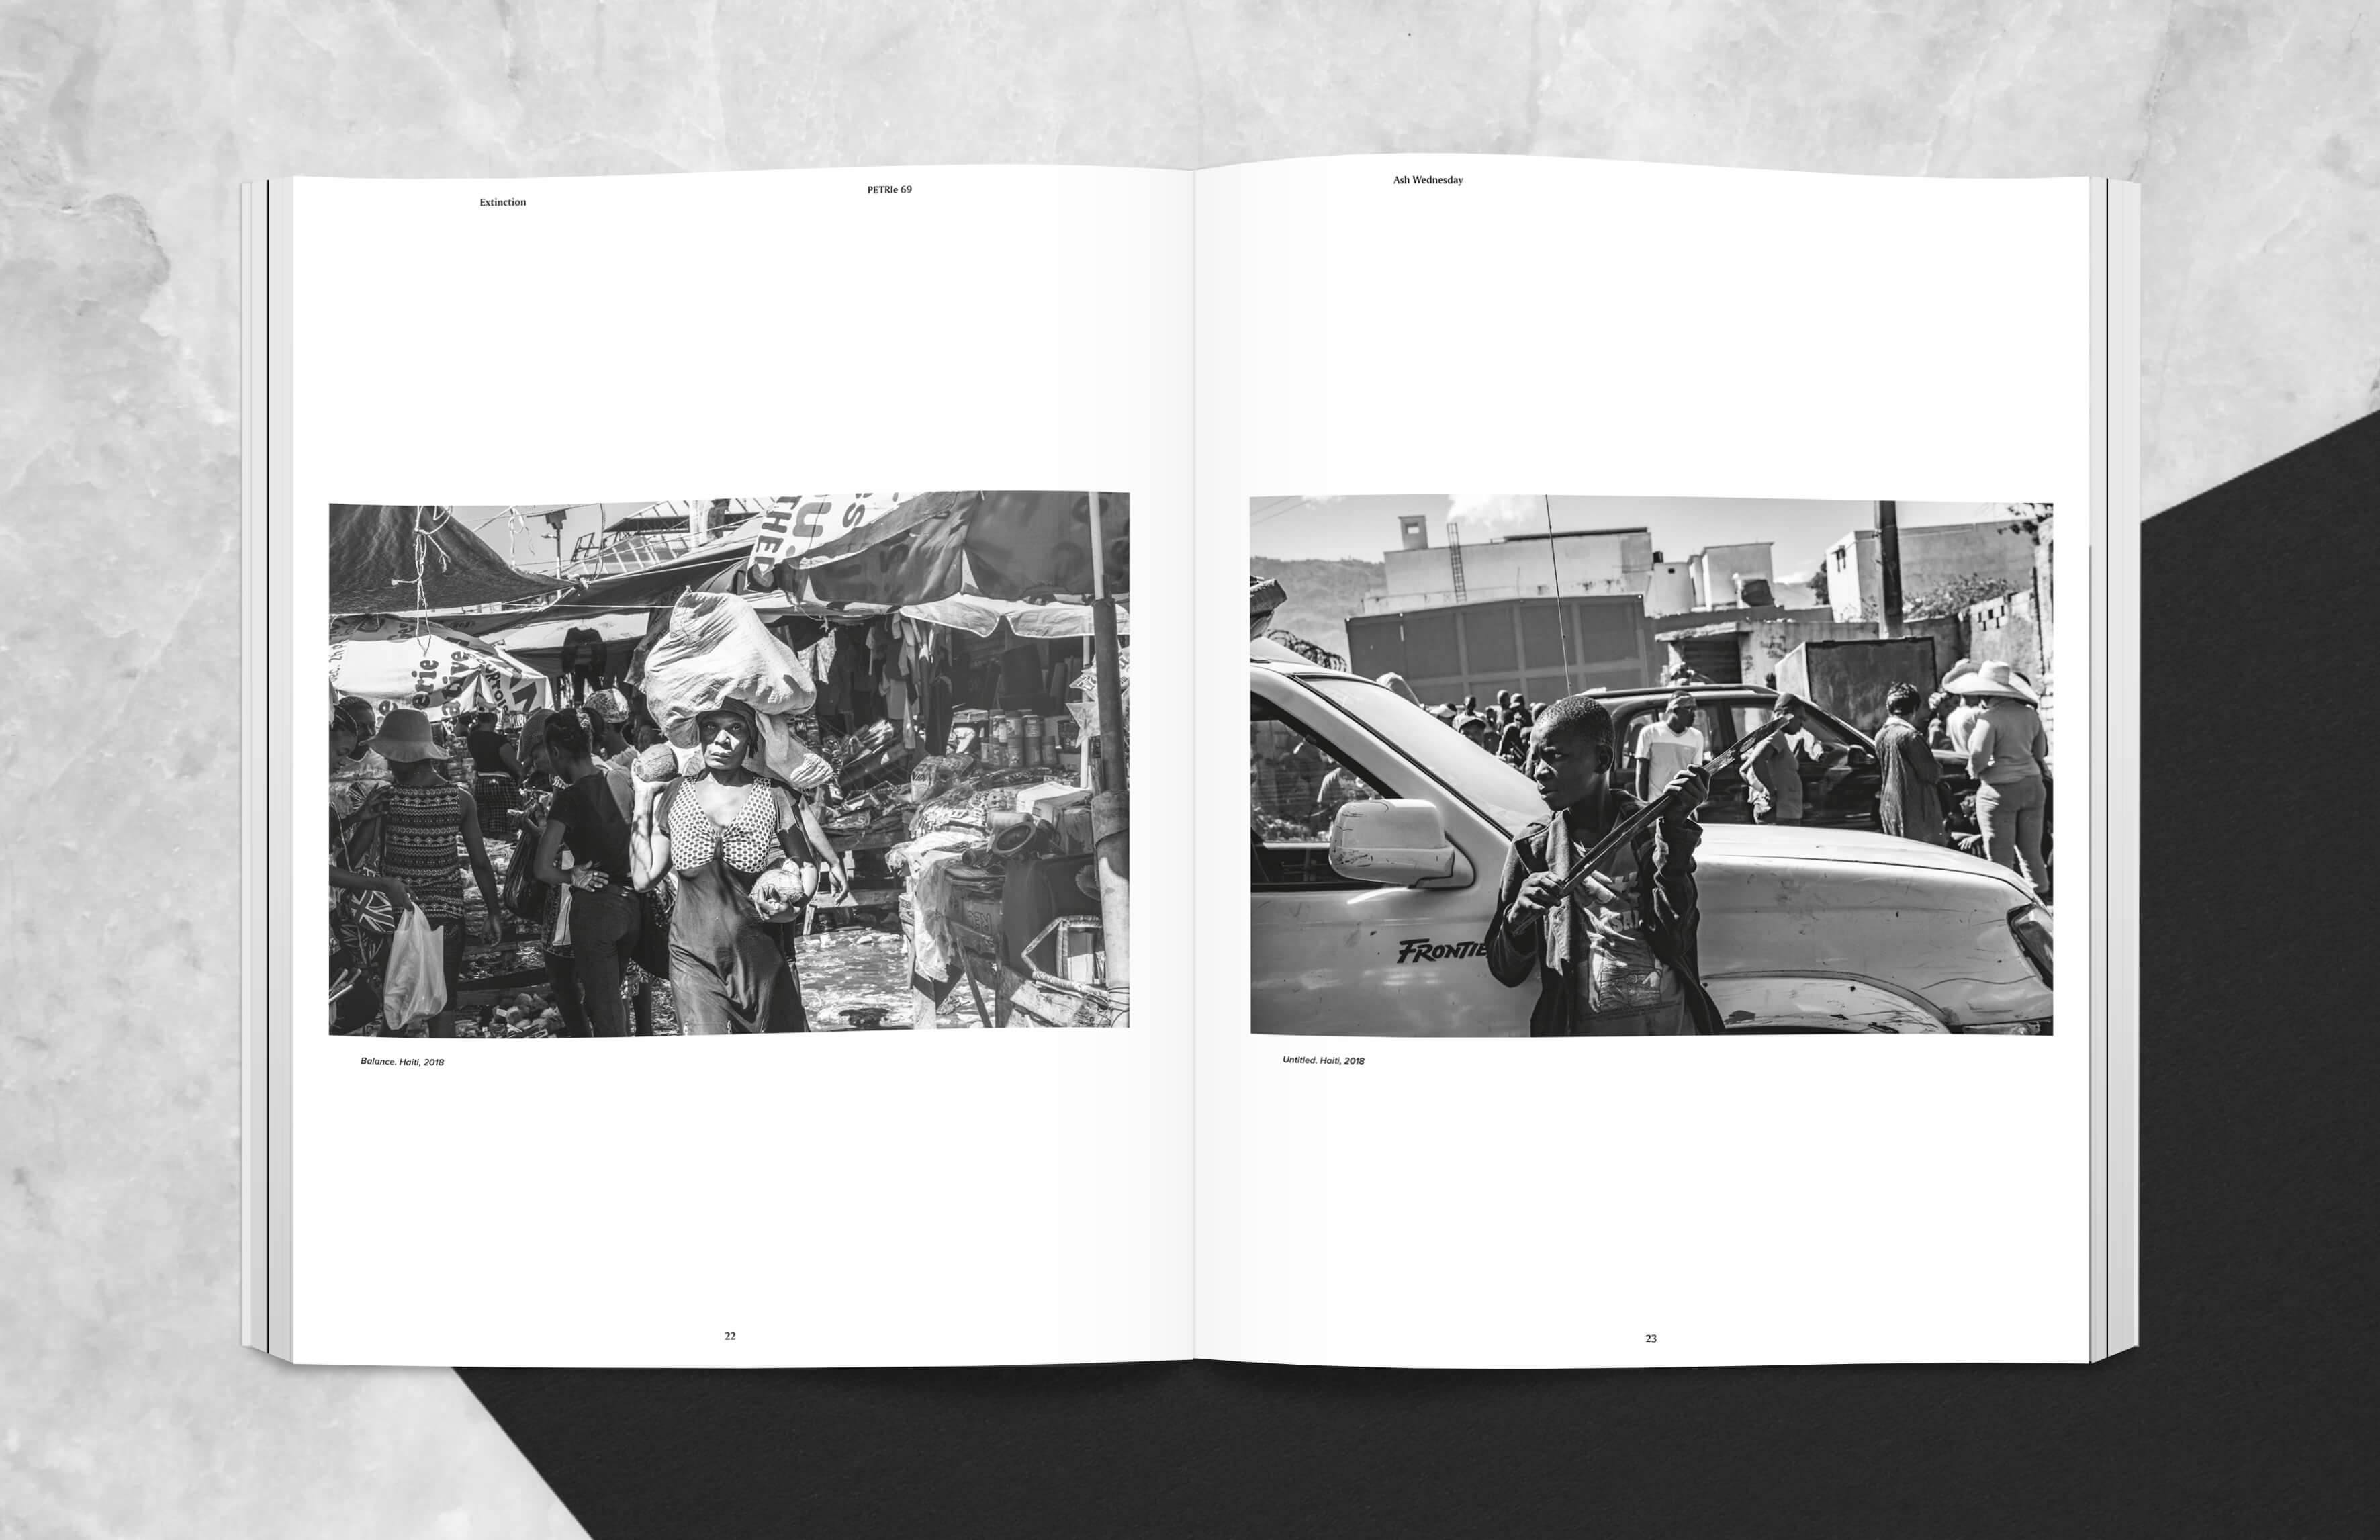 magazine spread showing People in Iron Market in Port Au Prince Haiti after 2018 fire